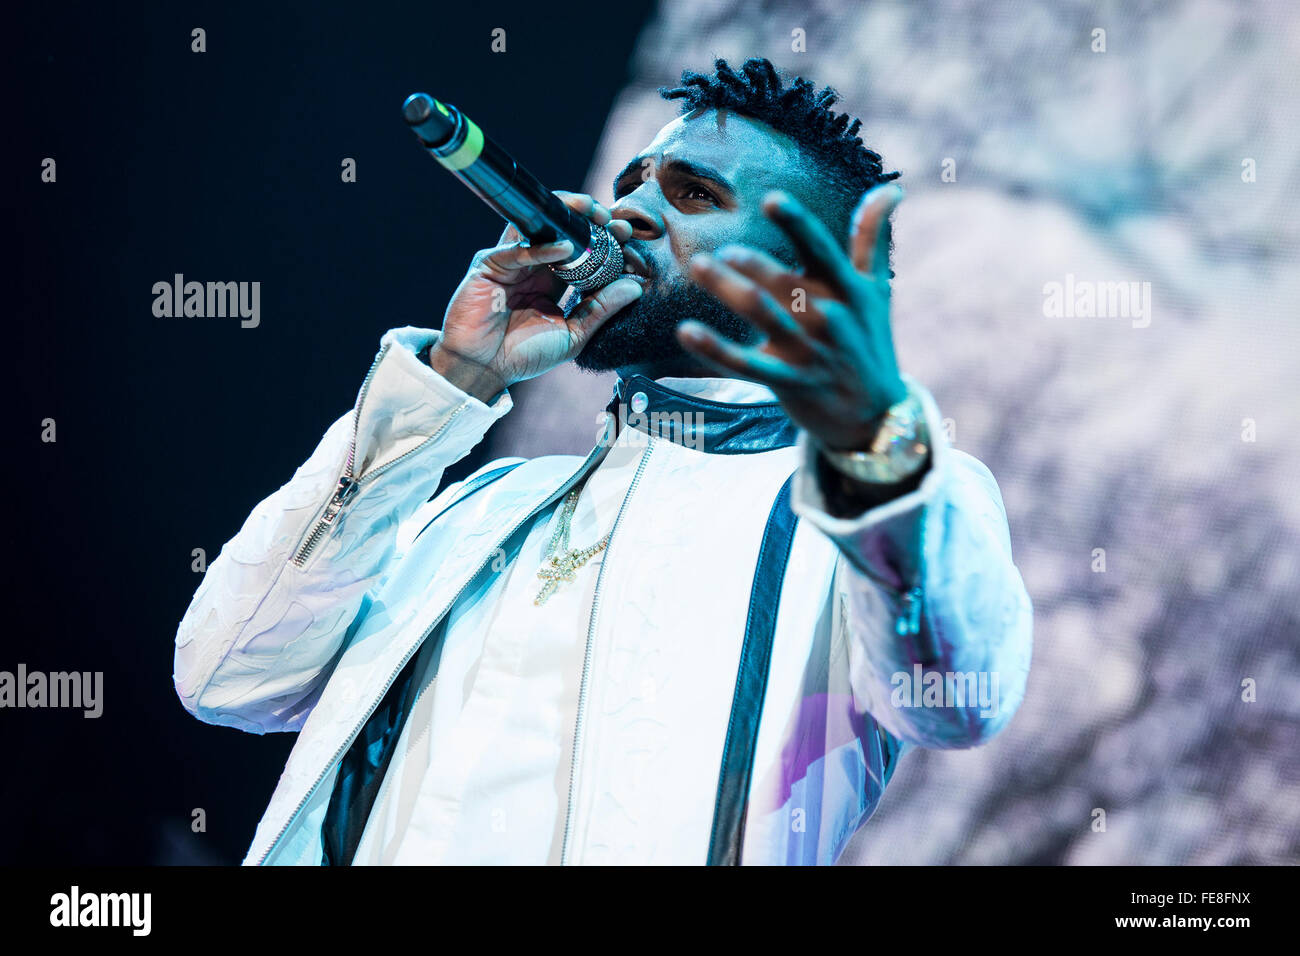 Manchester, UK  4th February, 2016  Jason Derulo performs at